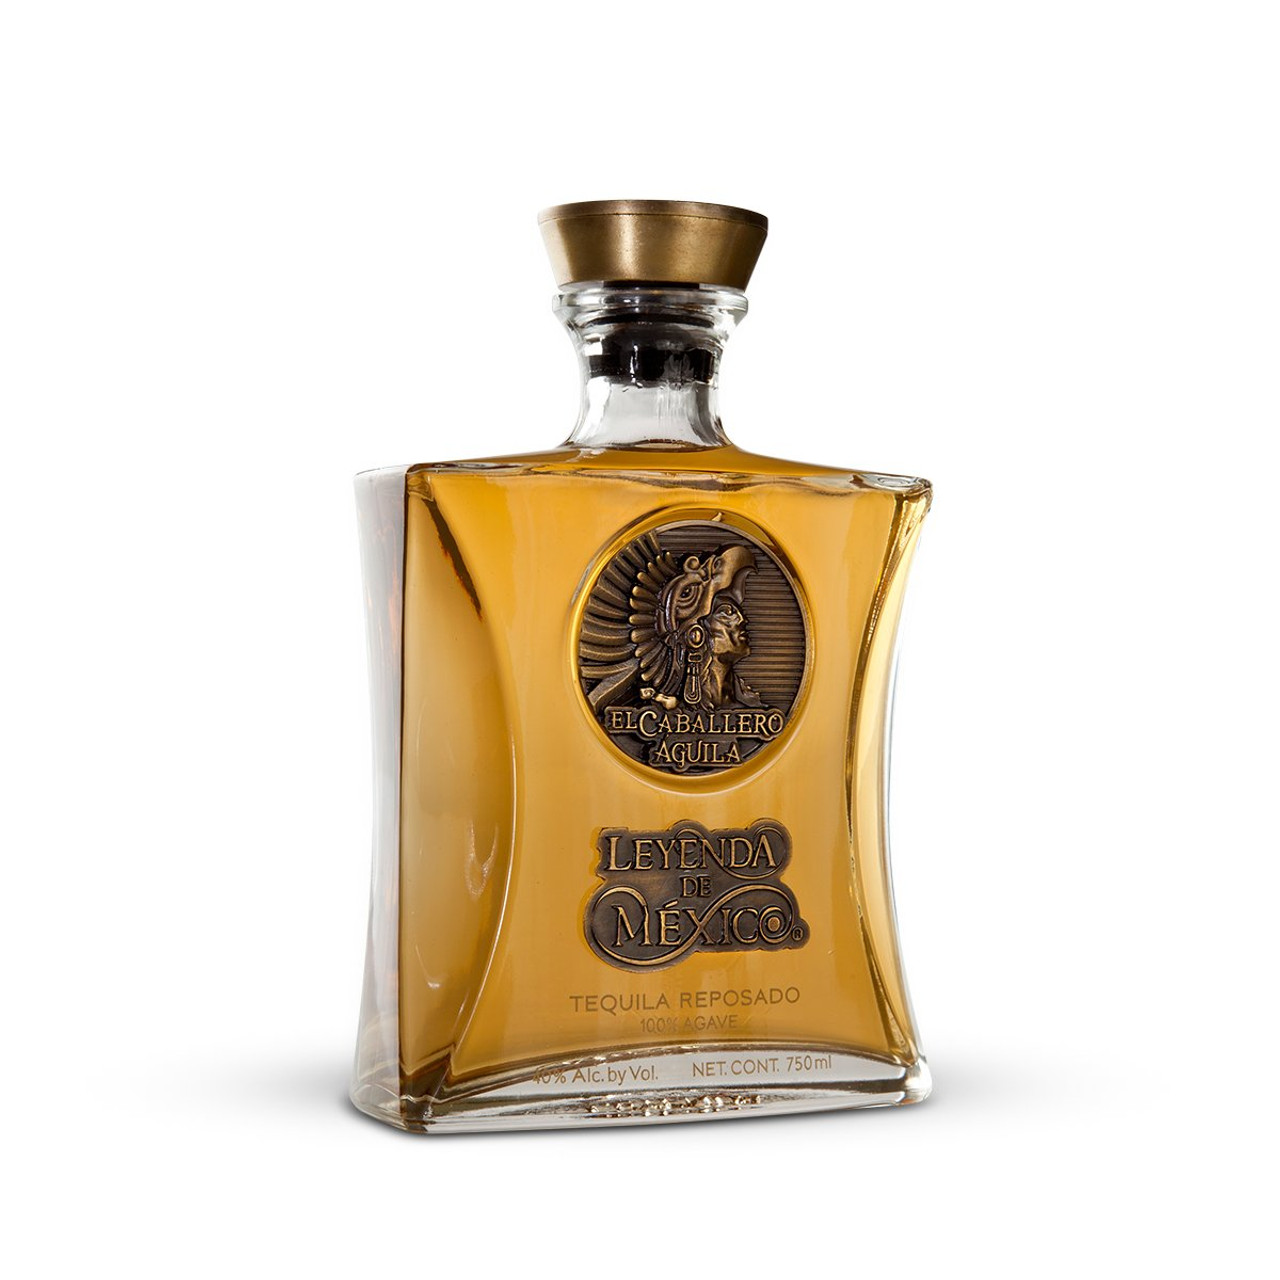 Exquisite on the palate, fresh and clean with a touch of oak and a warm finish with hints of cooked agave.